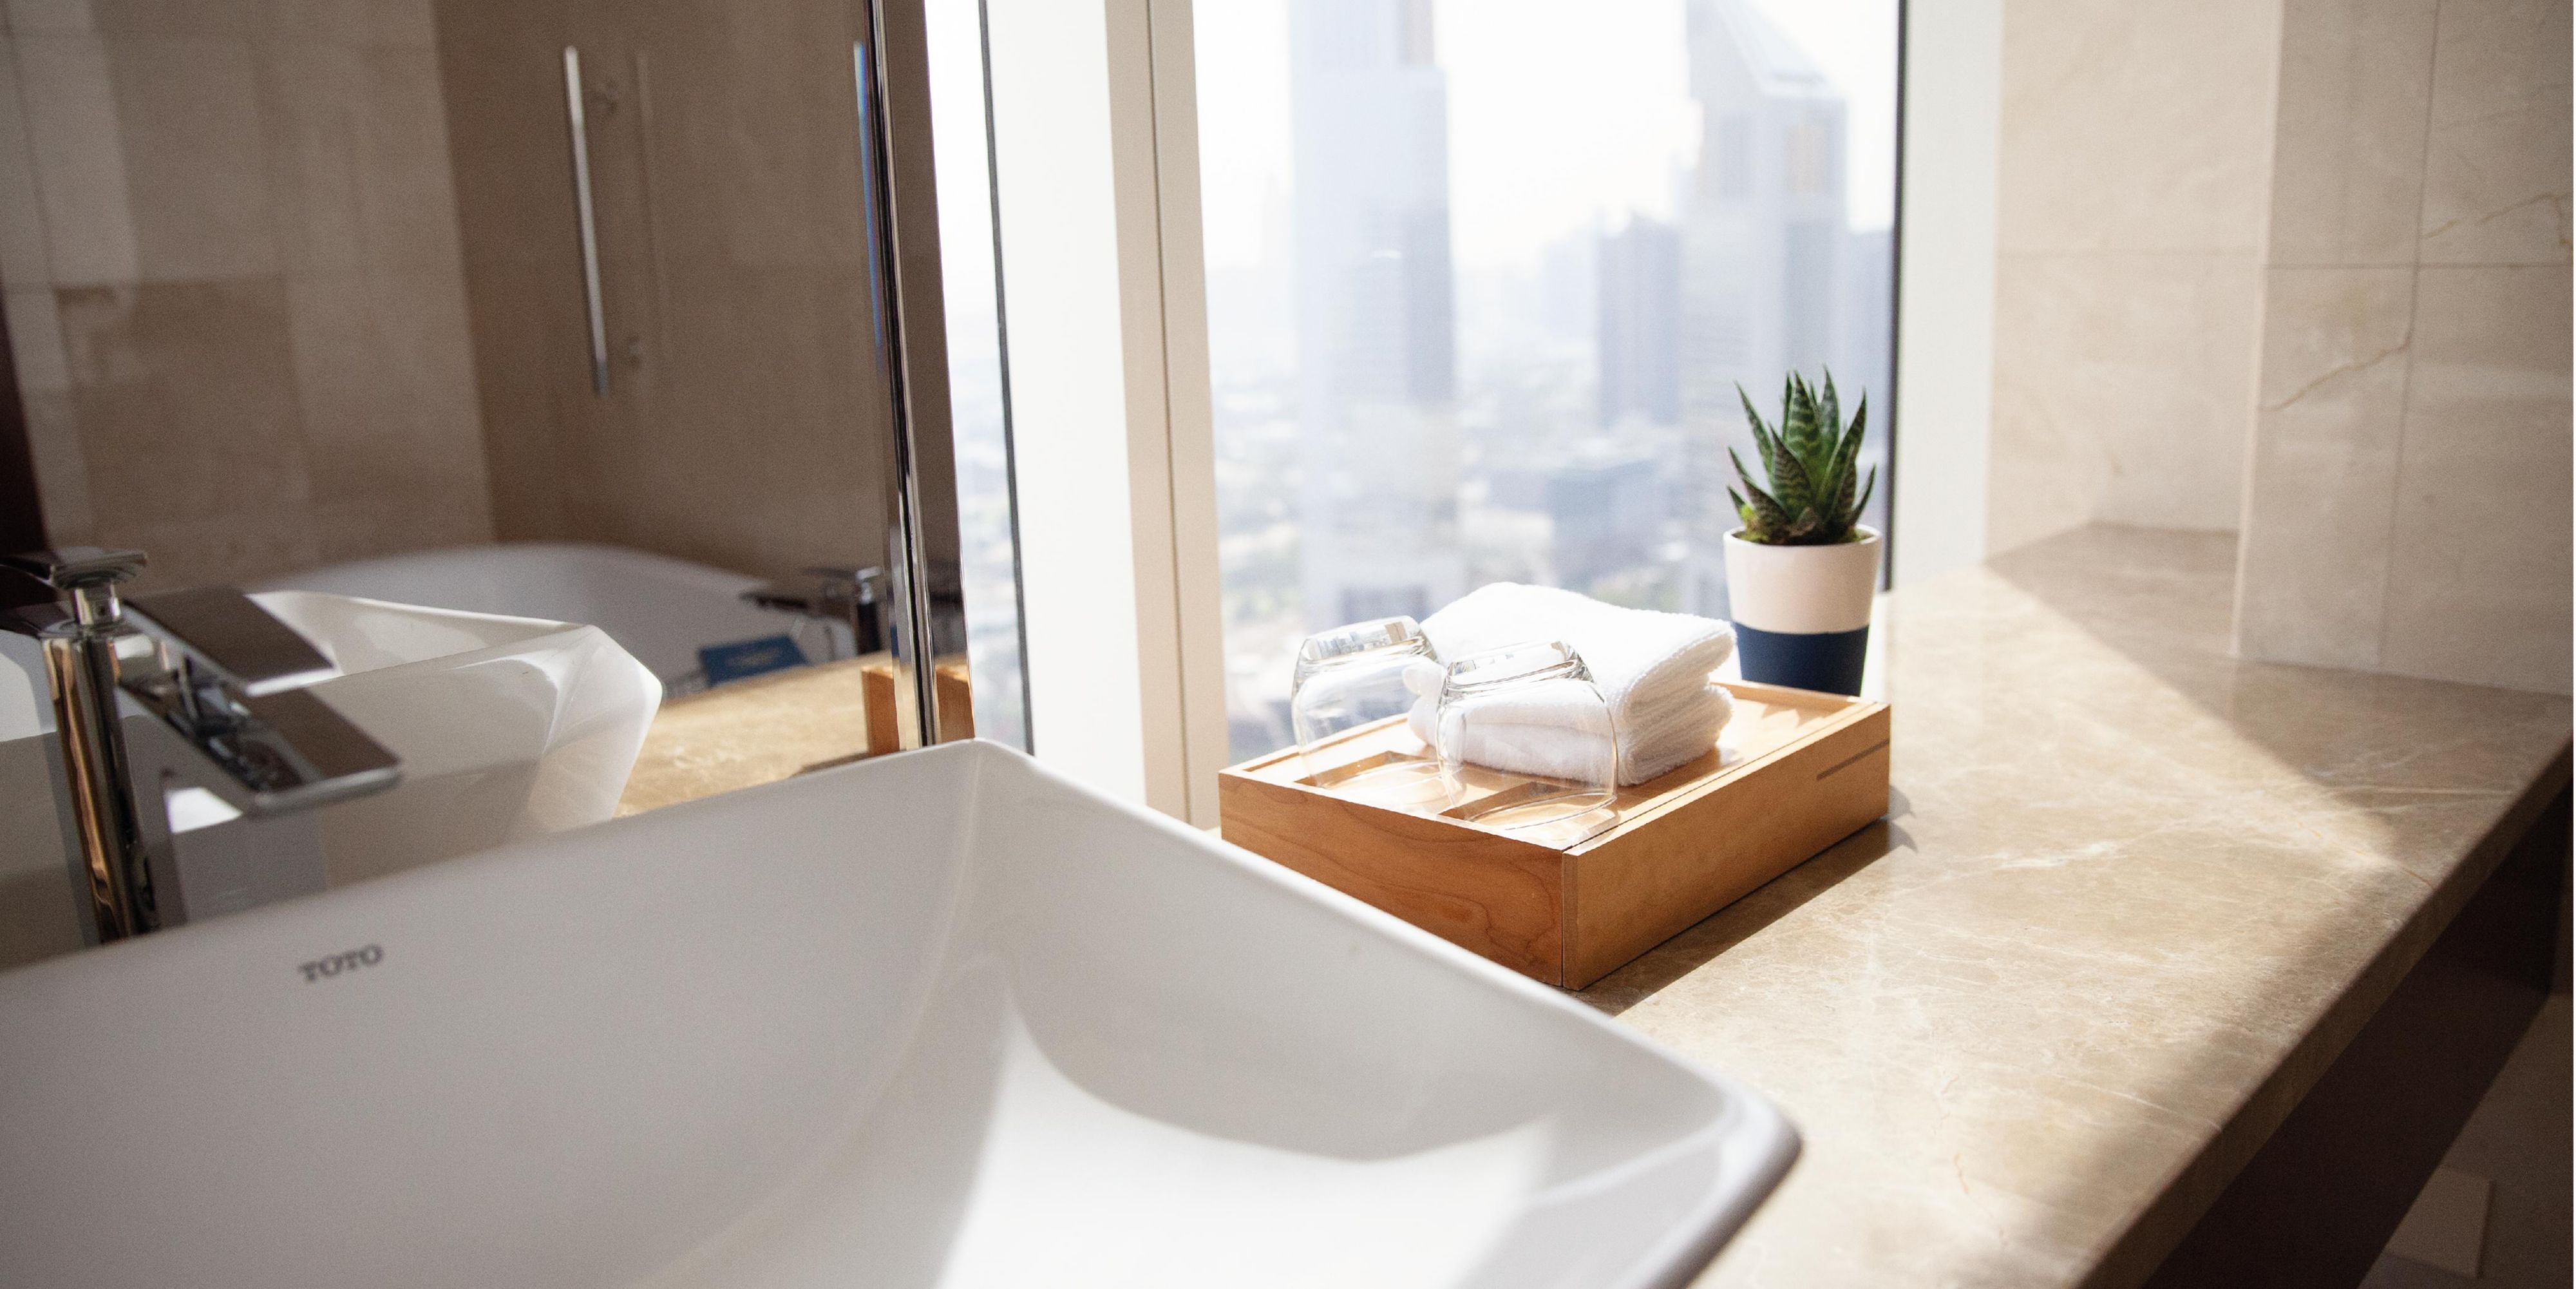 Deluxe Room bathroom, with views of Sheikh Zayed Road, Dubai